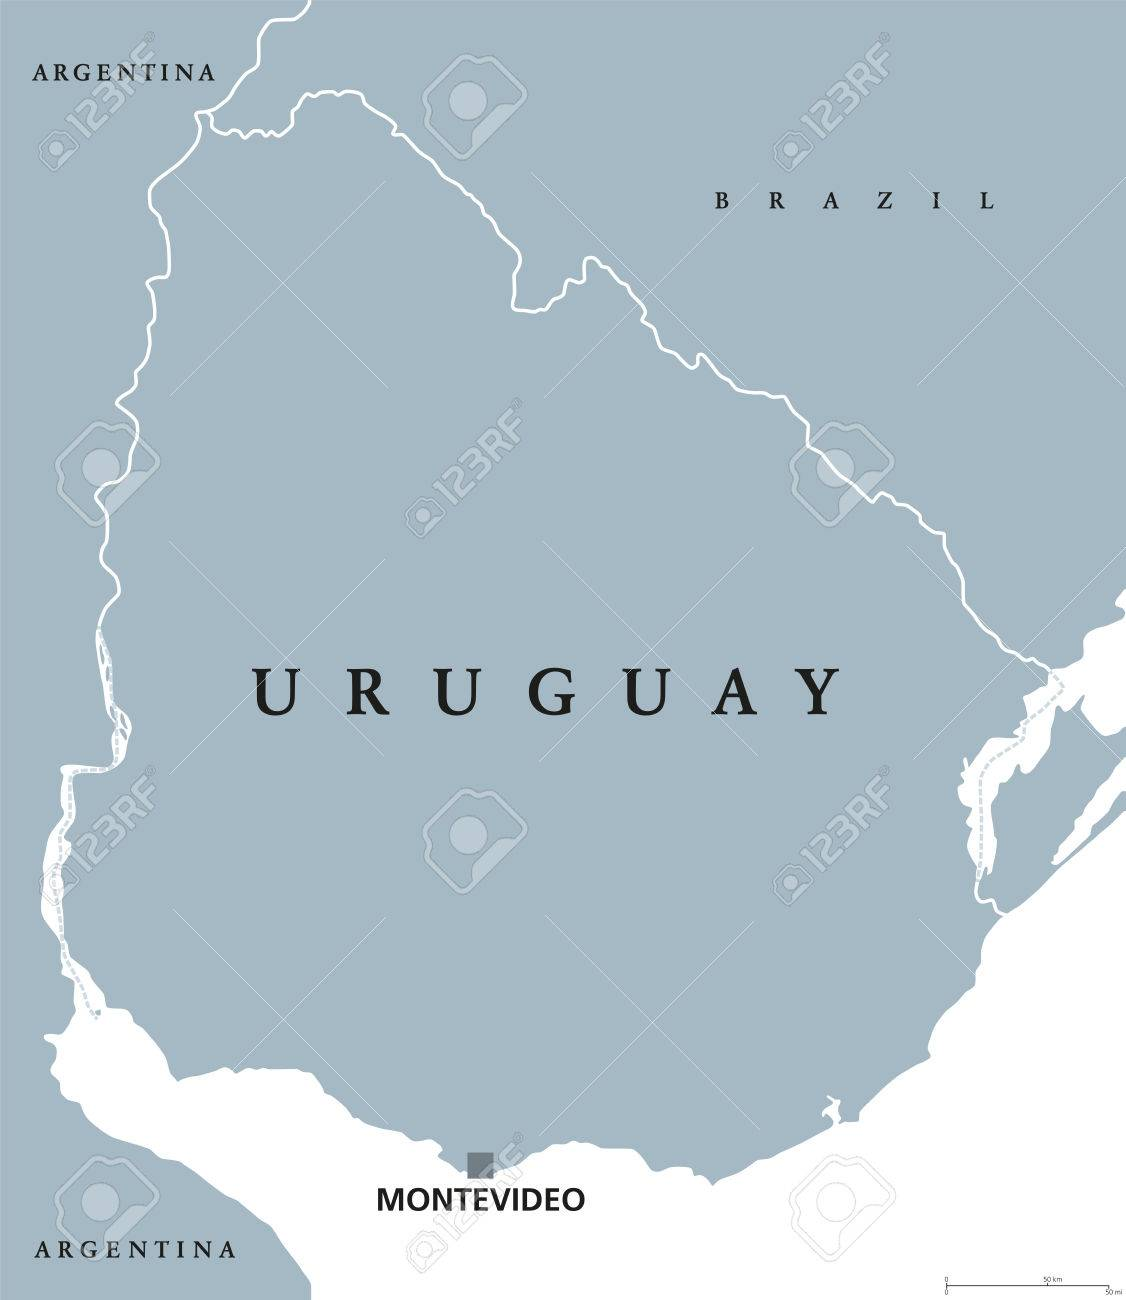 Image of: Uruguay Political Map With Capital Montevideo National Borders Royalty Free Cliparts Vectors And Stock Illustration Image 73890555